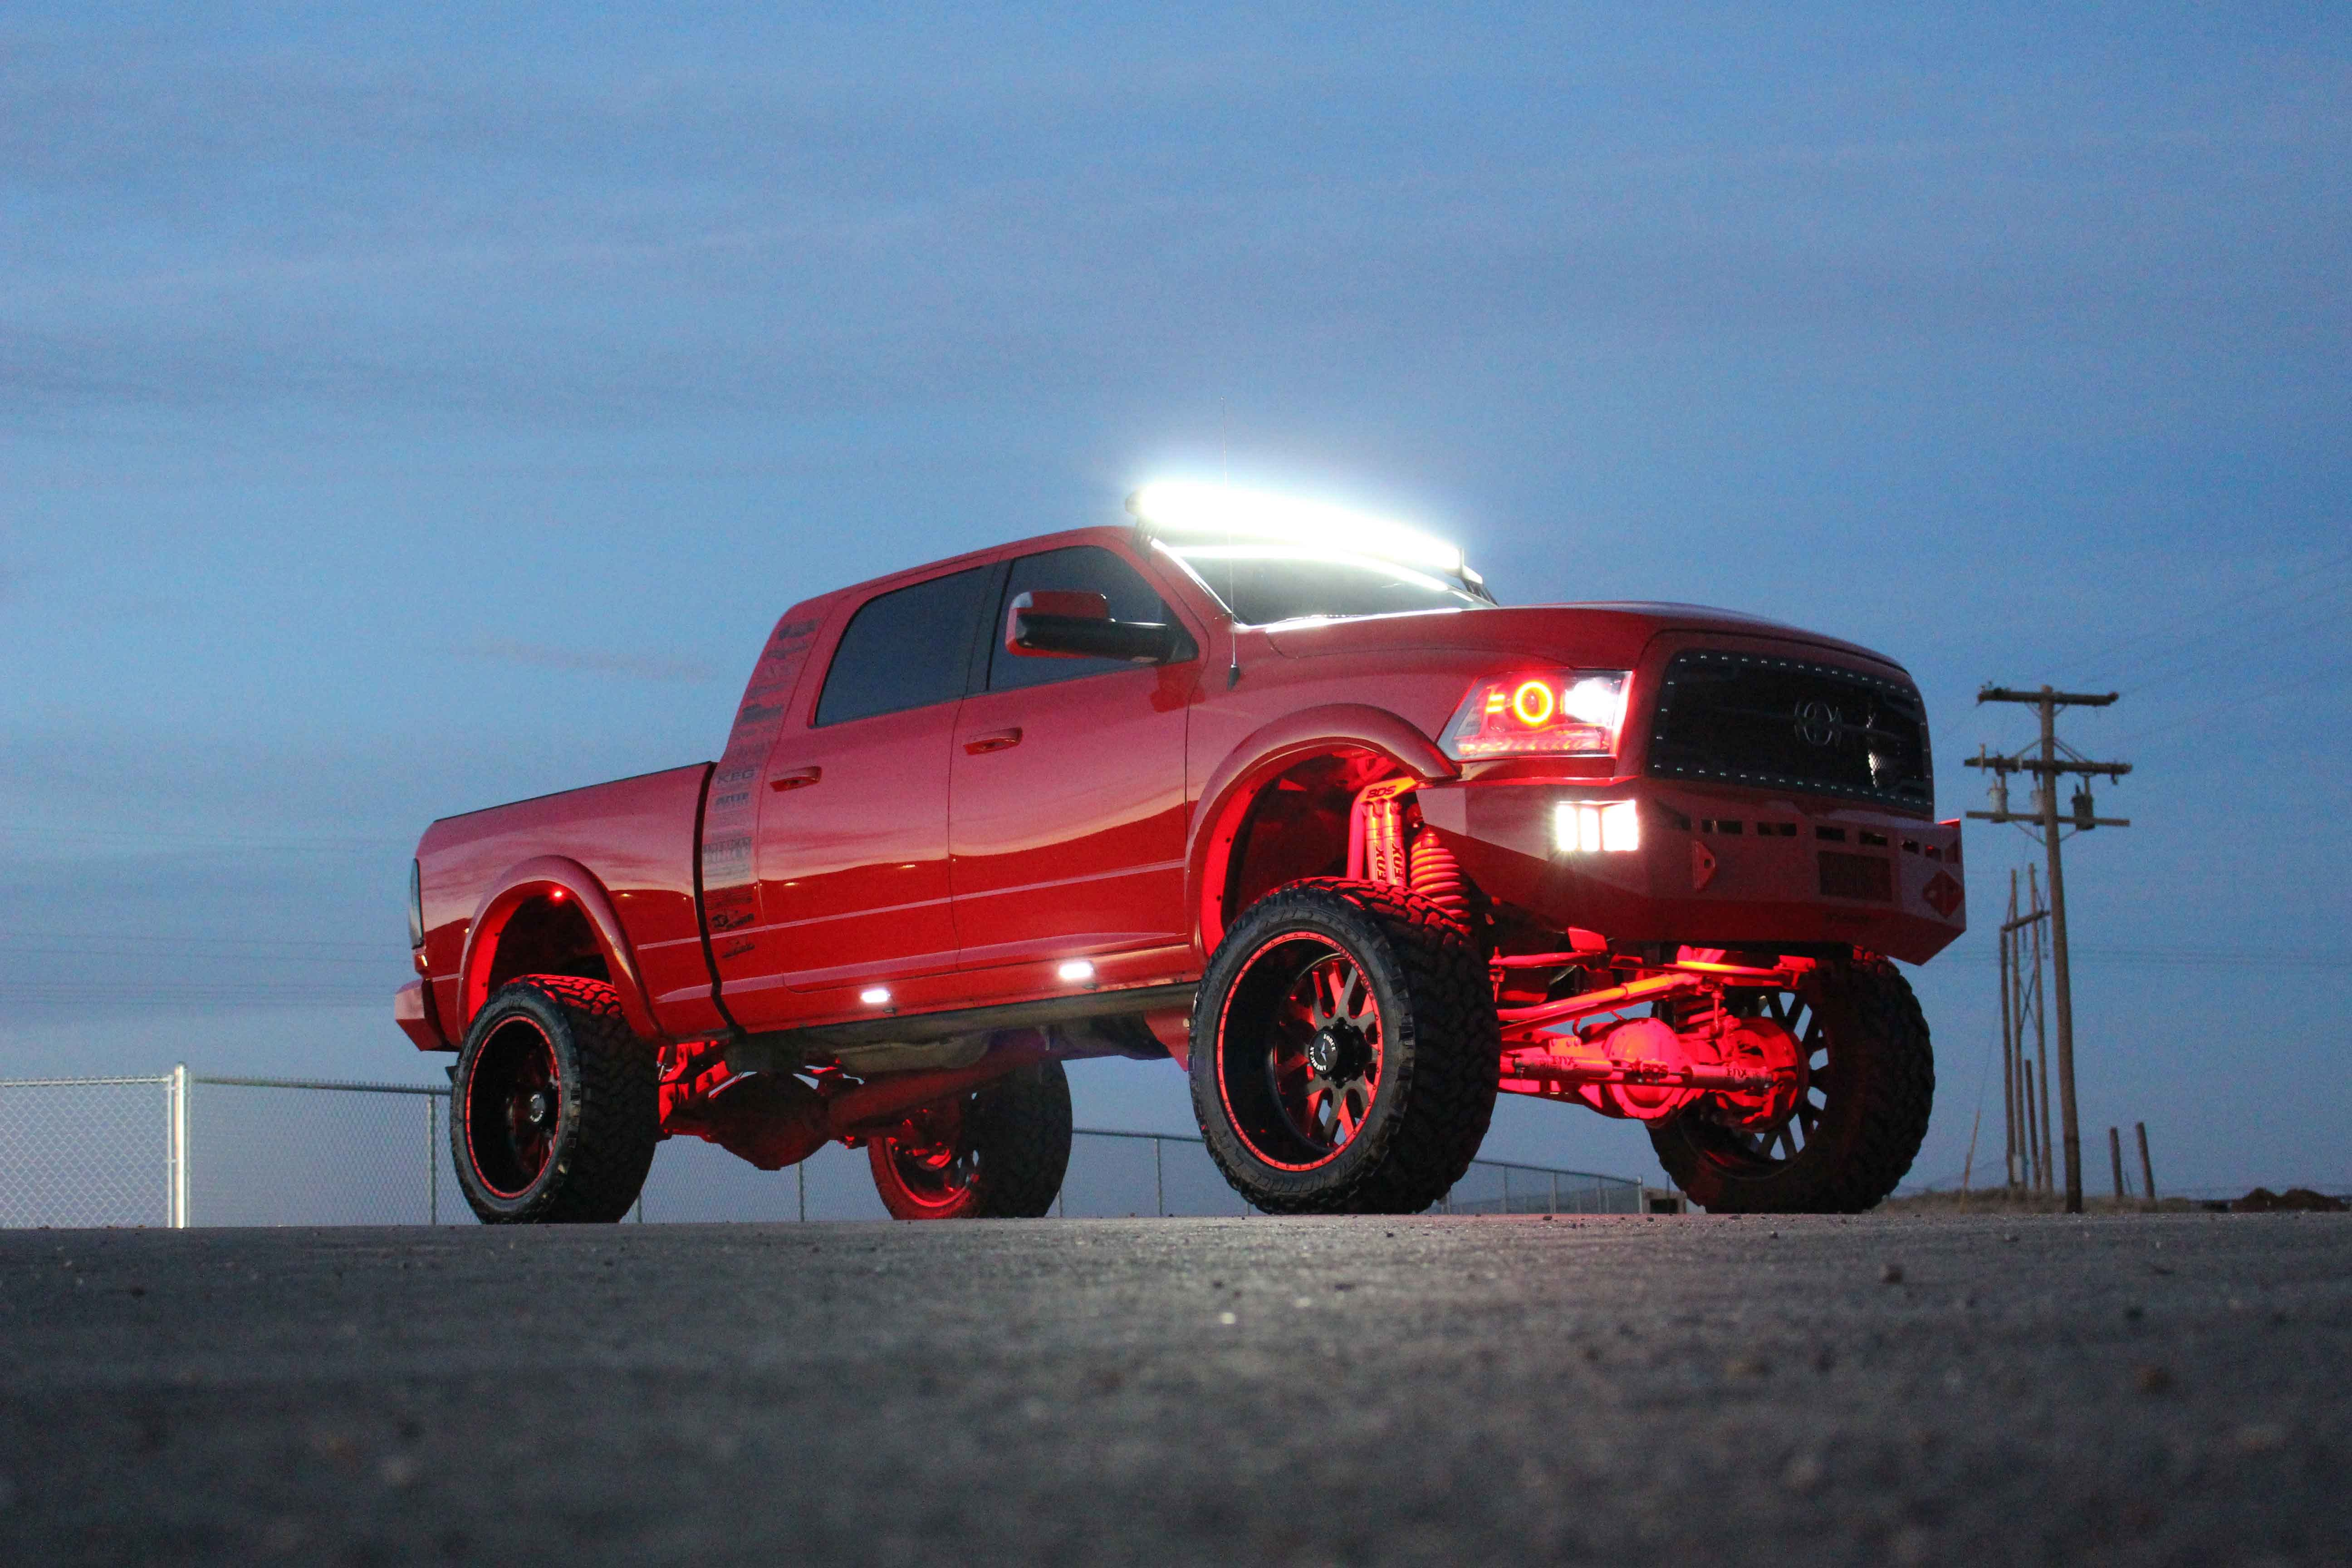 Radical Fire Truck Lifted Dodge Ram Megacab Carid Com